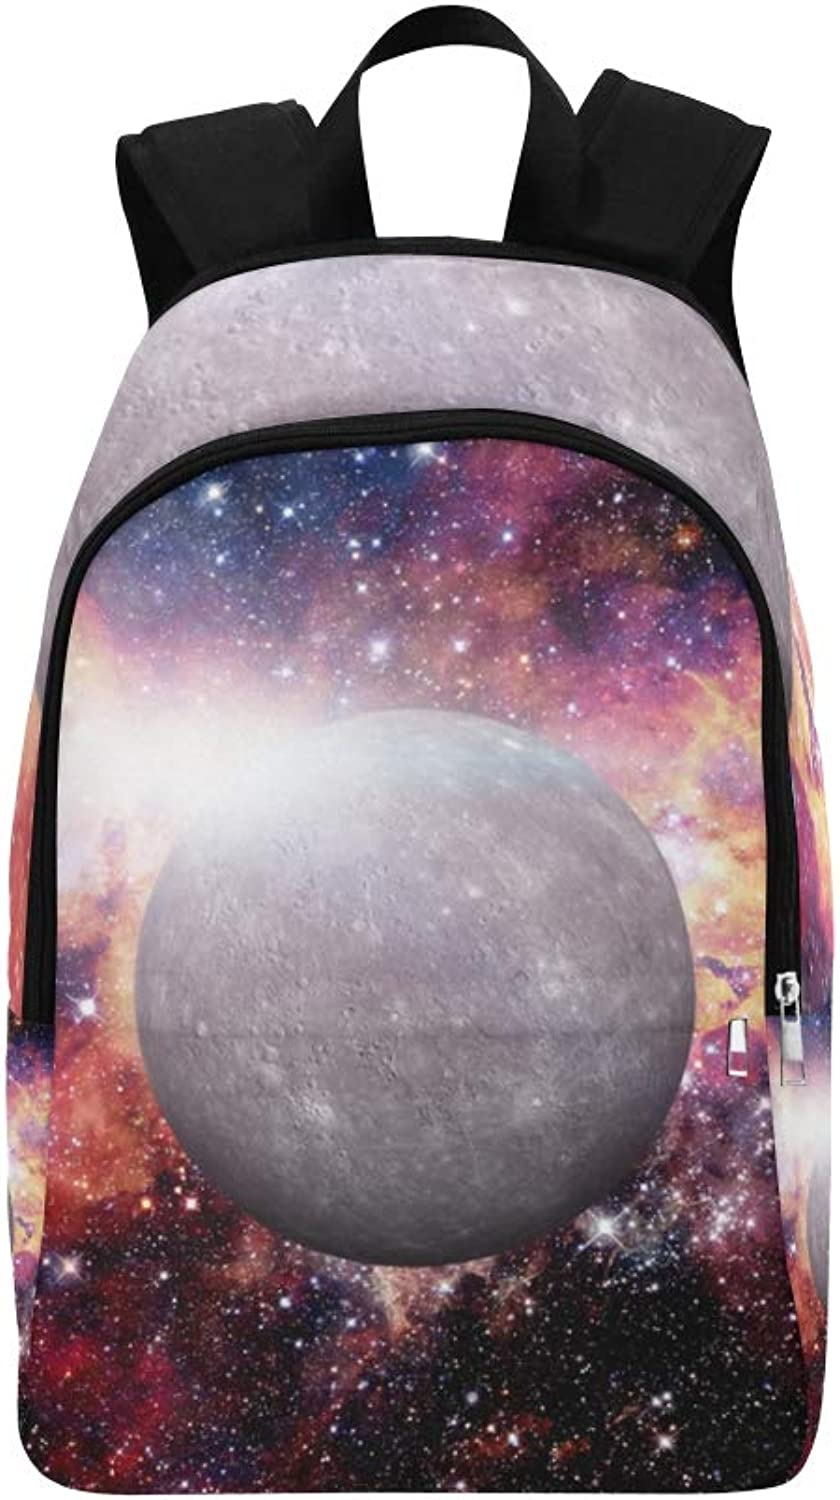 Beautiful Planets of The Solar System Casual Daypack Travel Bag College School Backpack for Mens and Women